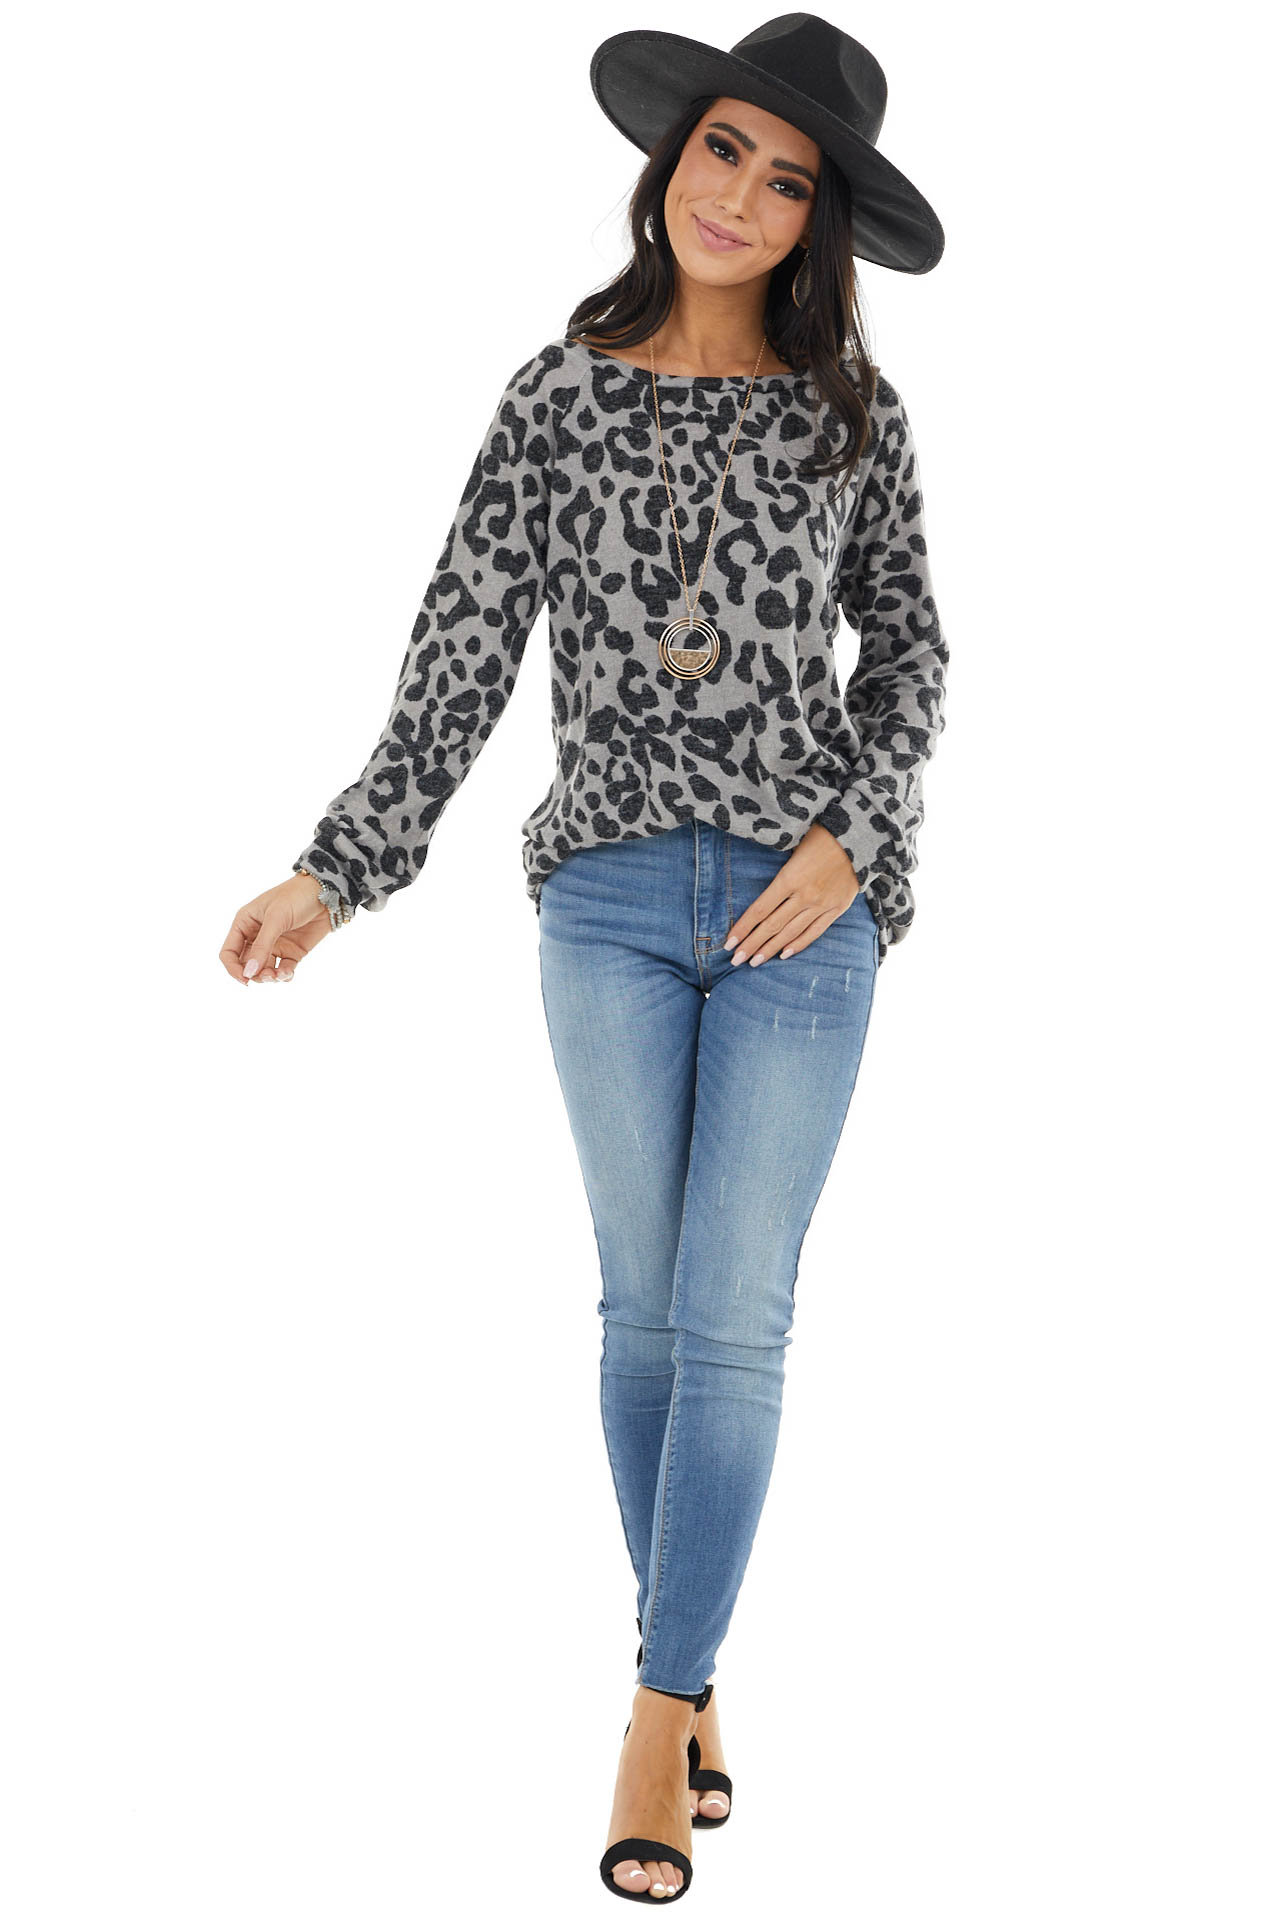 Grey and Black Leopard Print Long Sleeve Pullover Knit Top